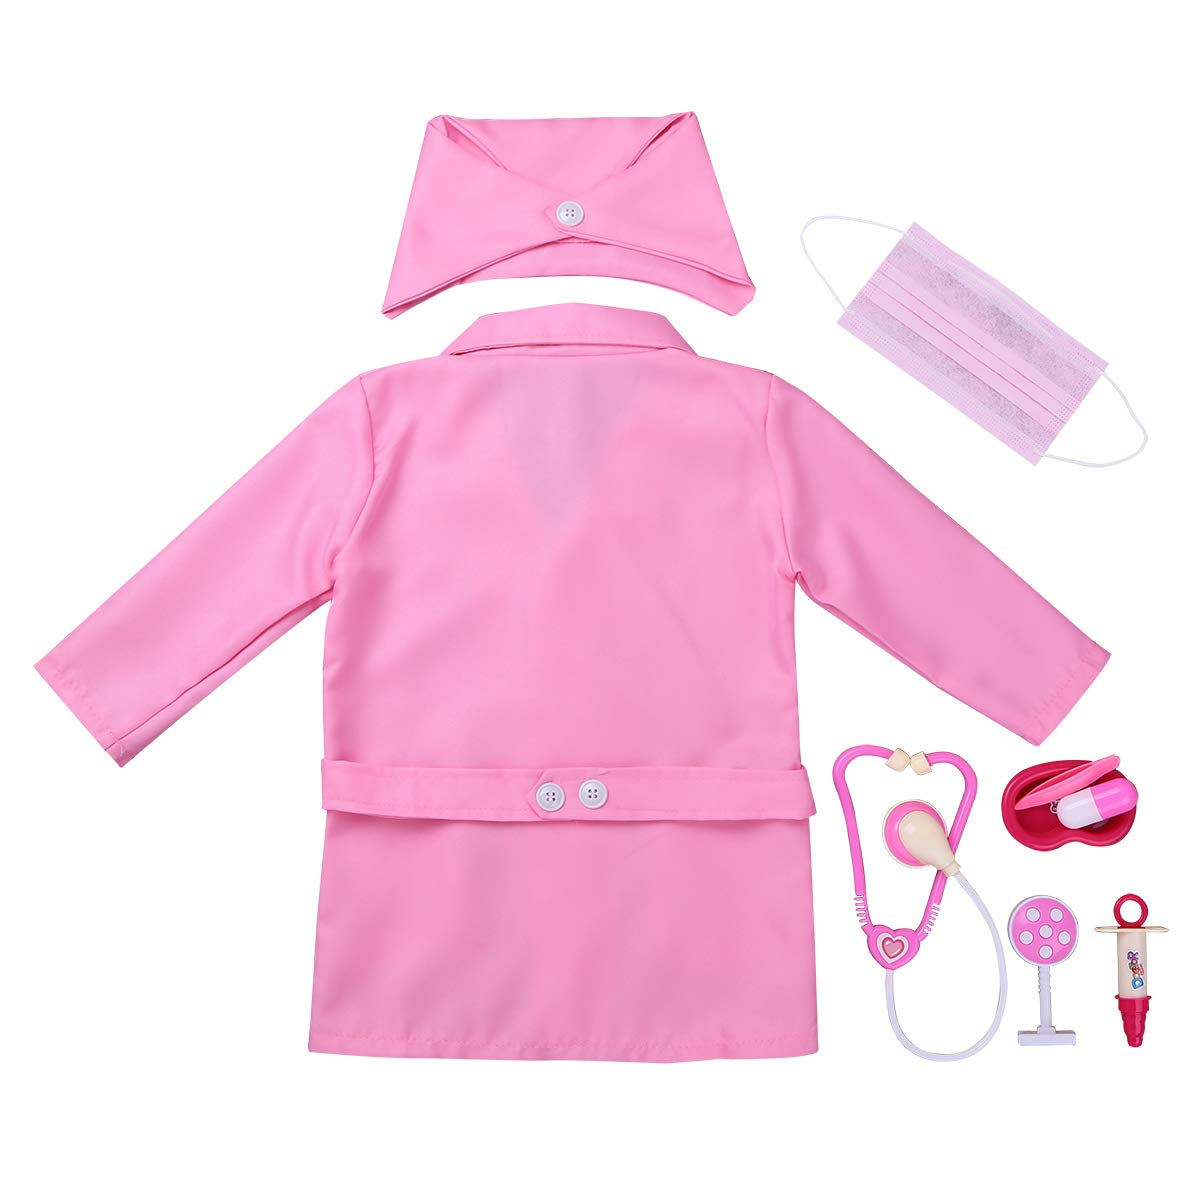 ACSUSS Child Unisex Boys Girls Hospital Doctor Lab Coat Doctor Nurse Cosplay Costumes with Tools Accessories